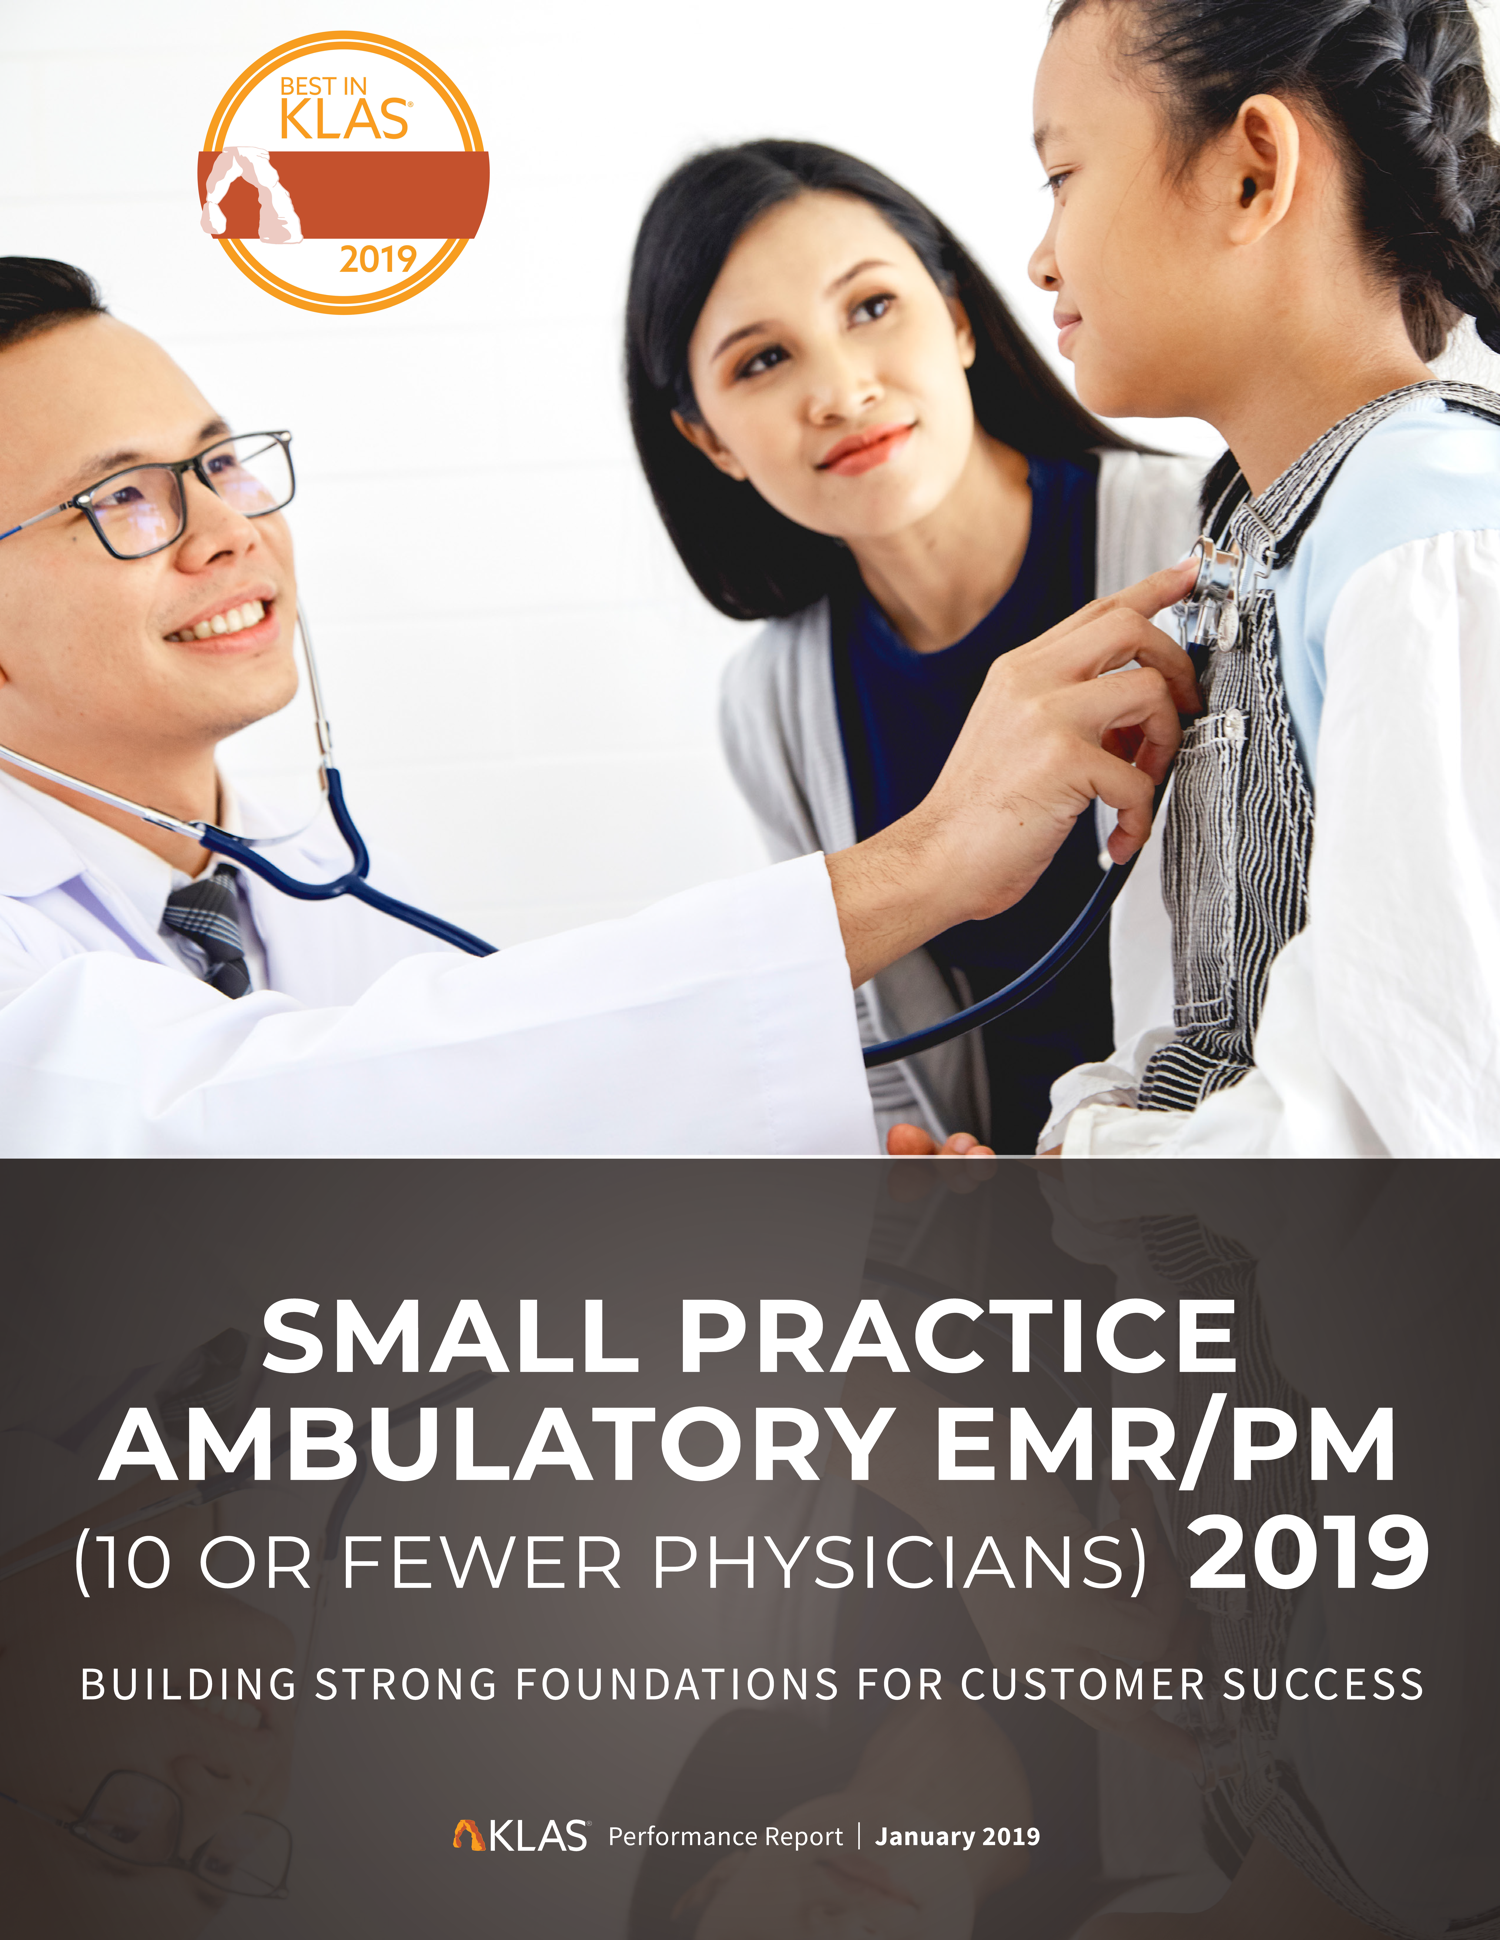 Small Practice EMR_PM 2019 FINAL 1_1500x1940